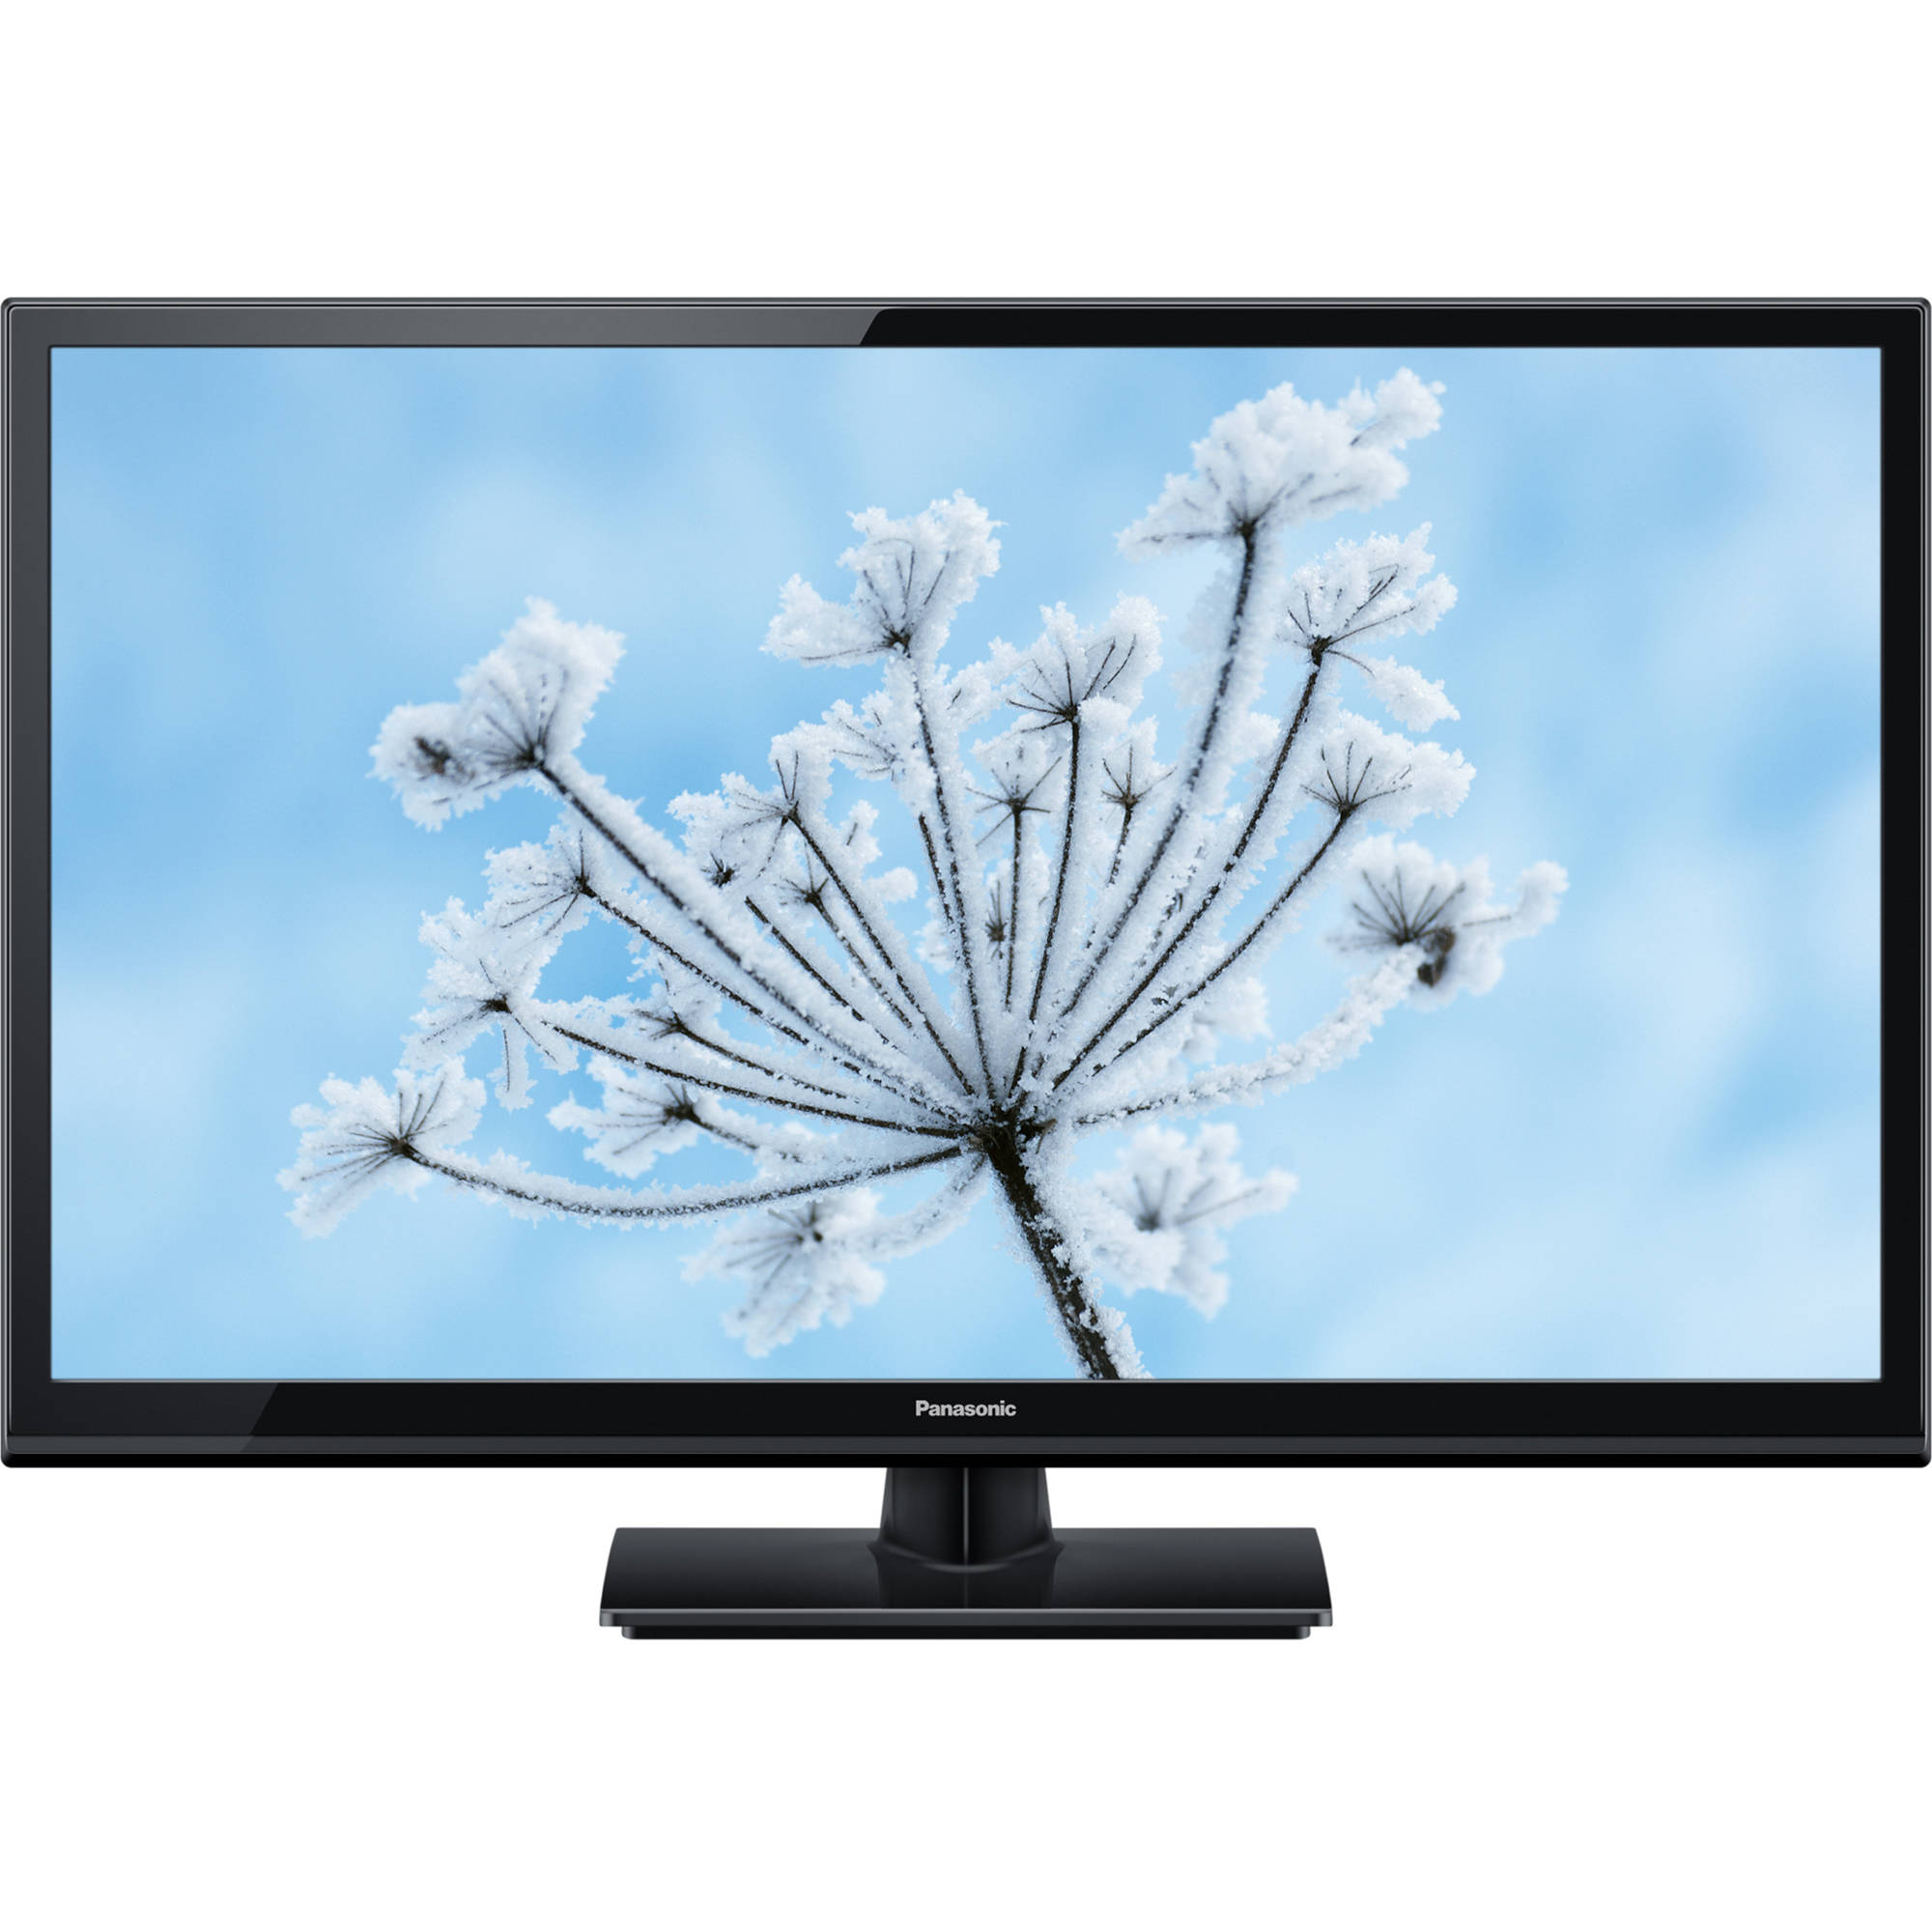 Panasonic viera 40 inch smart full hd led tv